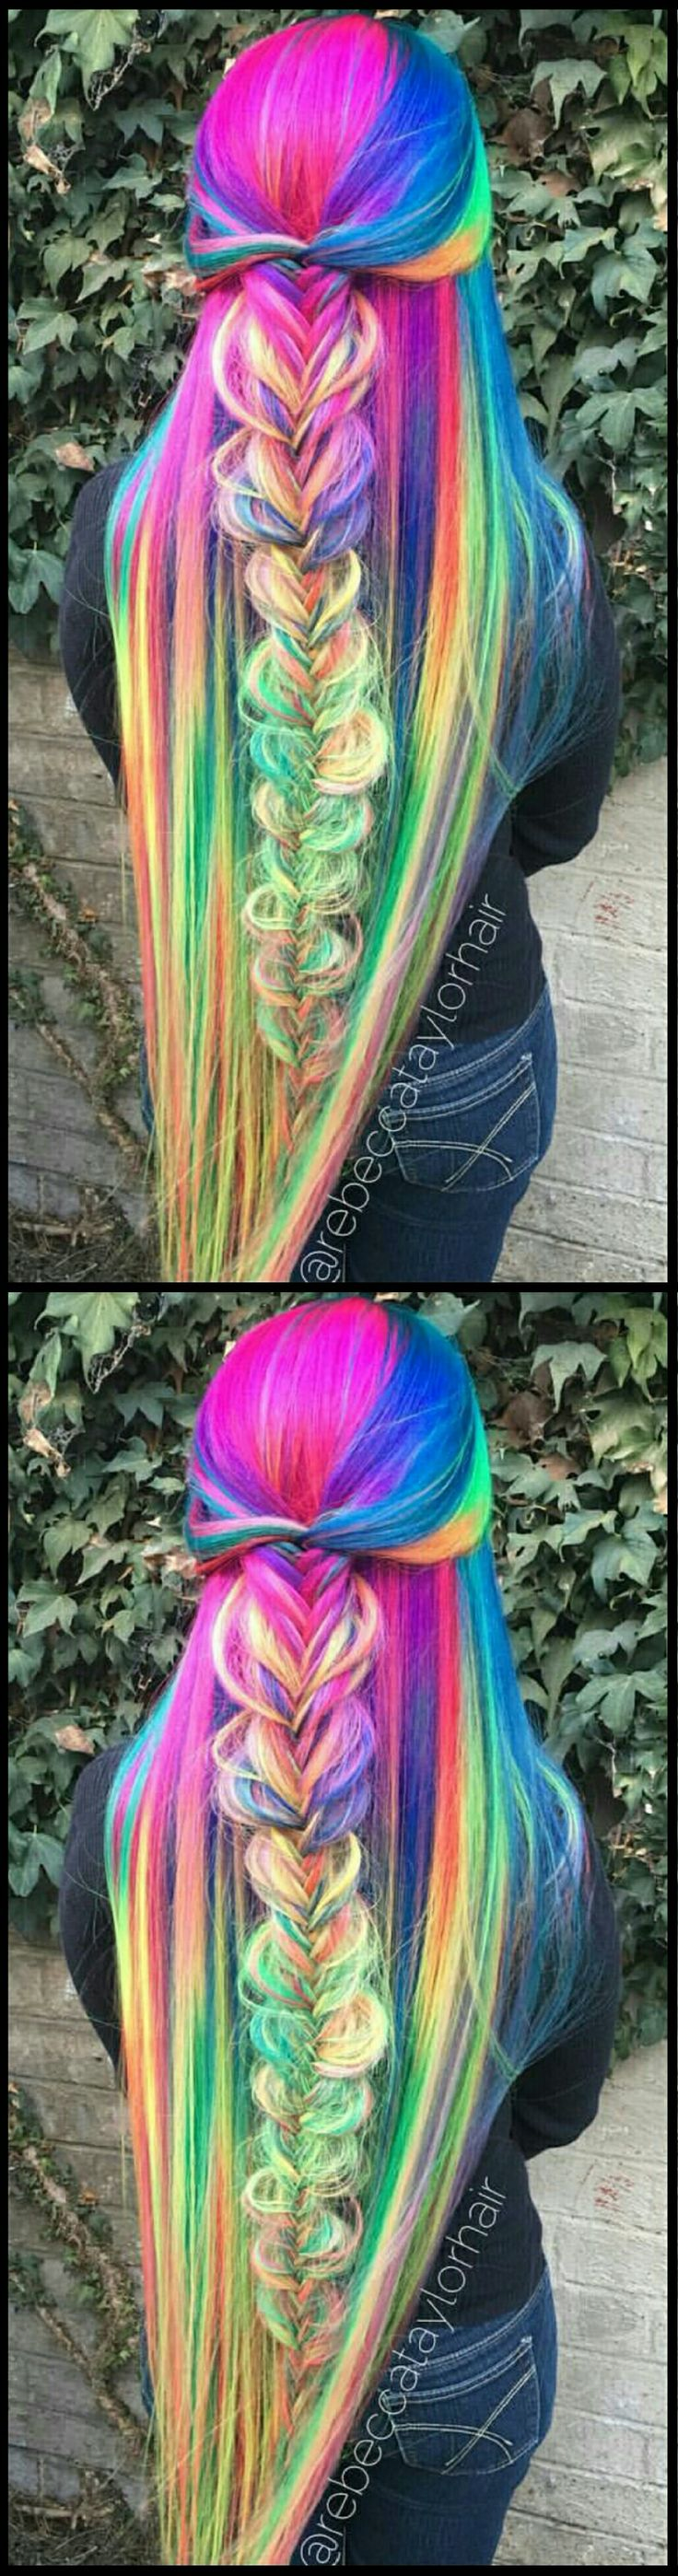 Braided rainbow dyed hair color inspiration @rebeccataylorhair